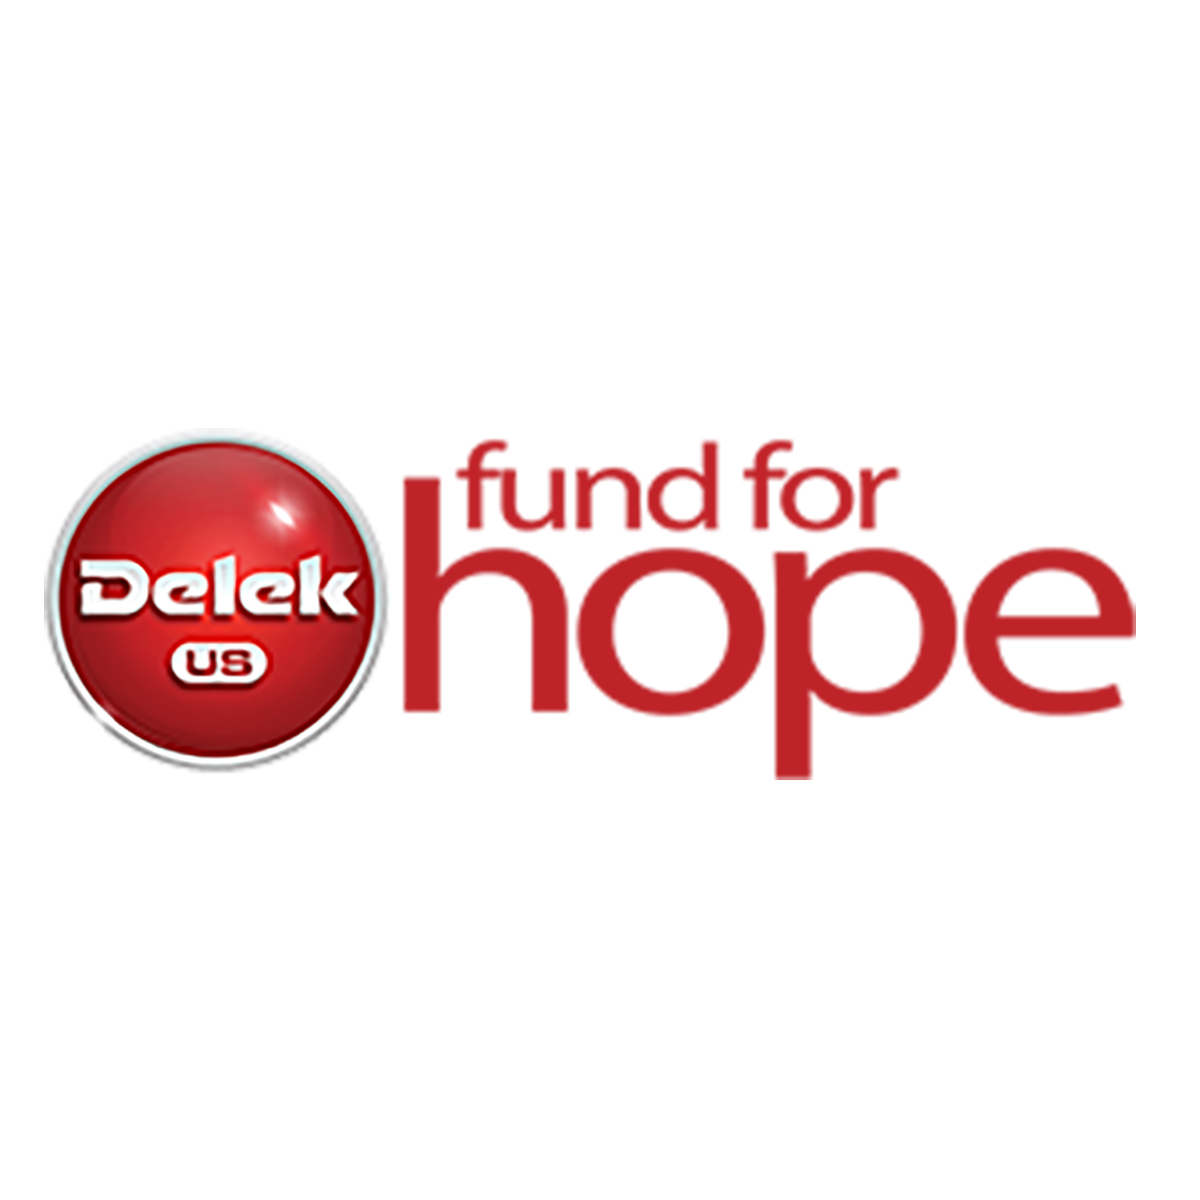 Biofriendly is proud to support the Delek fund for hope